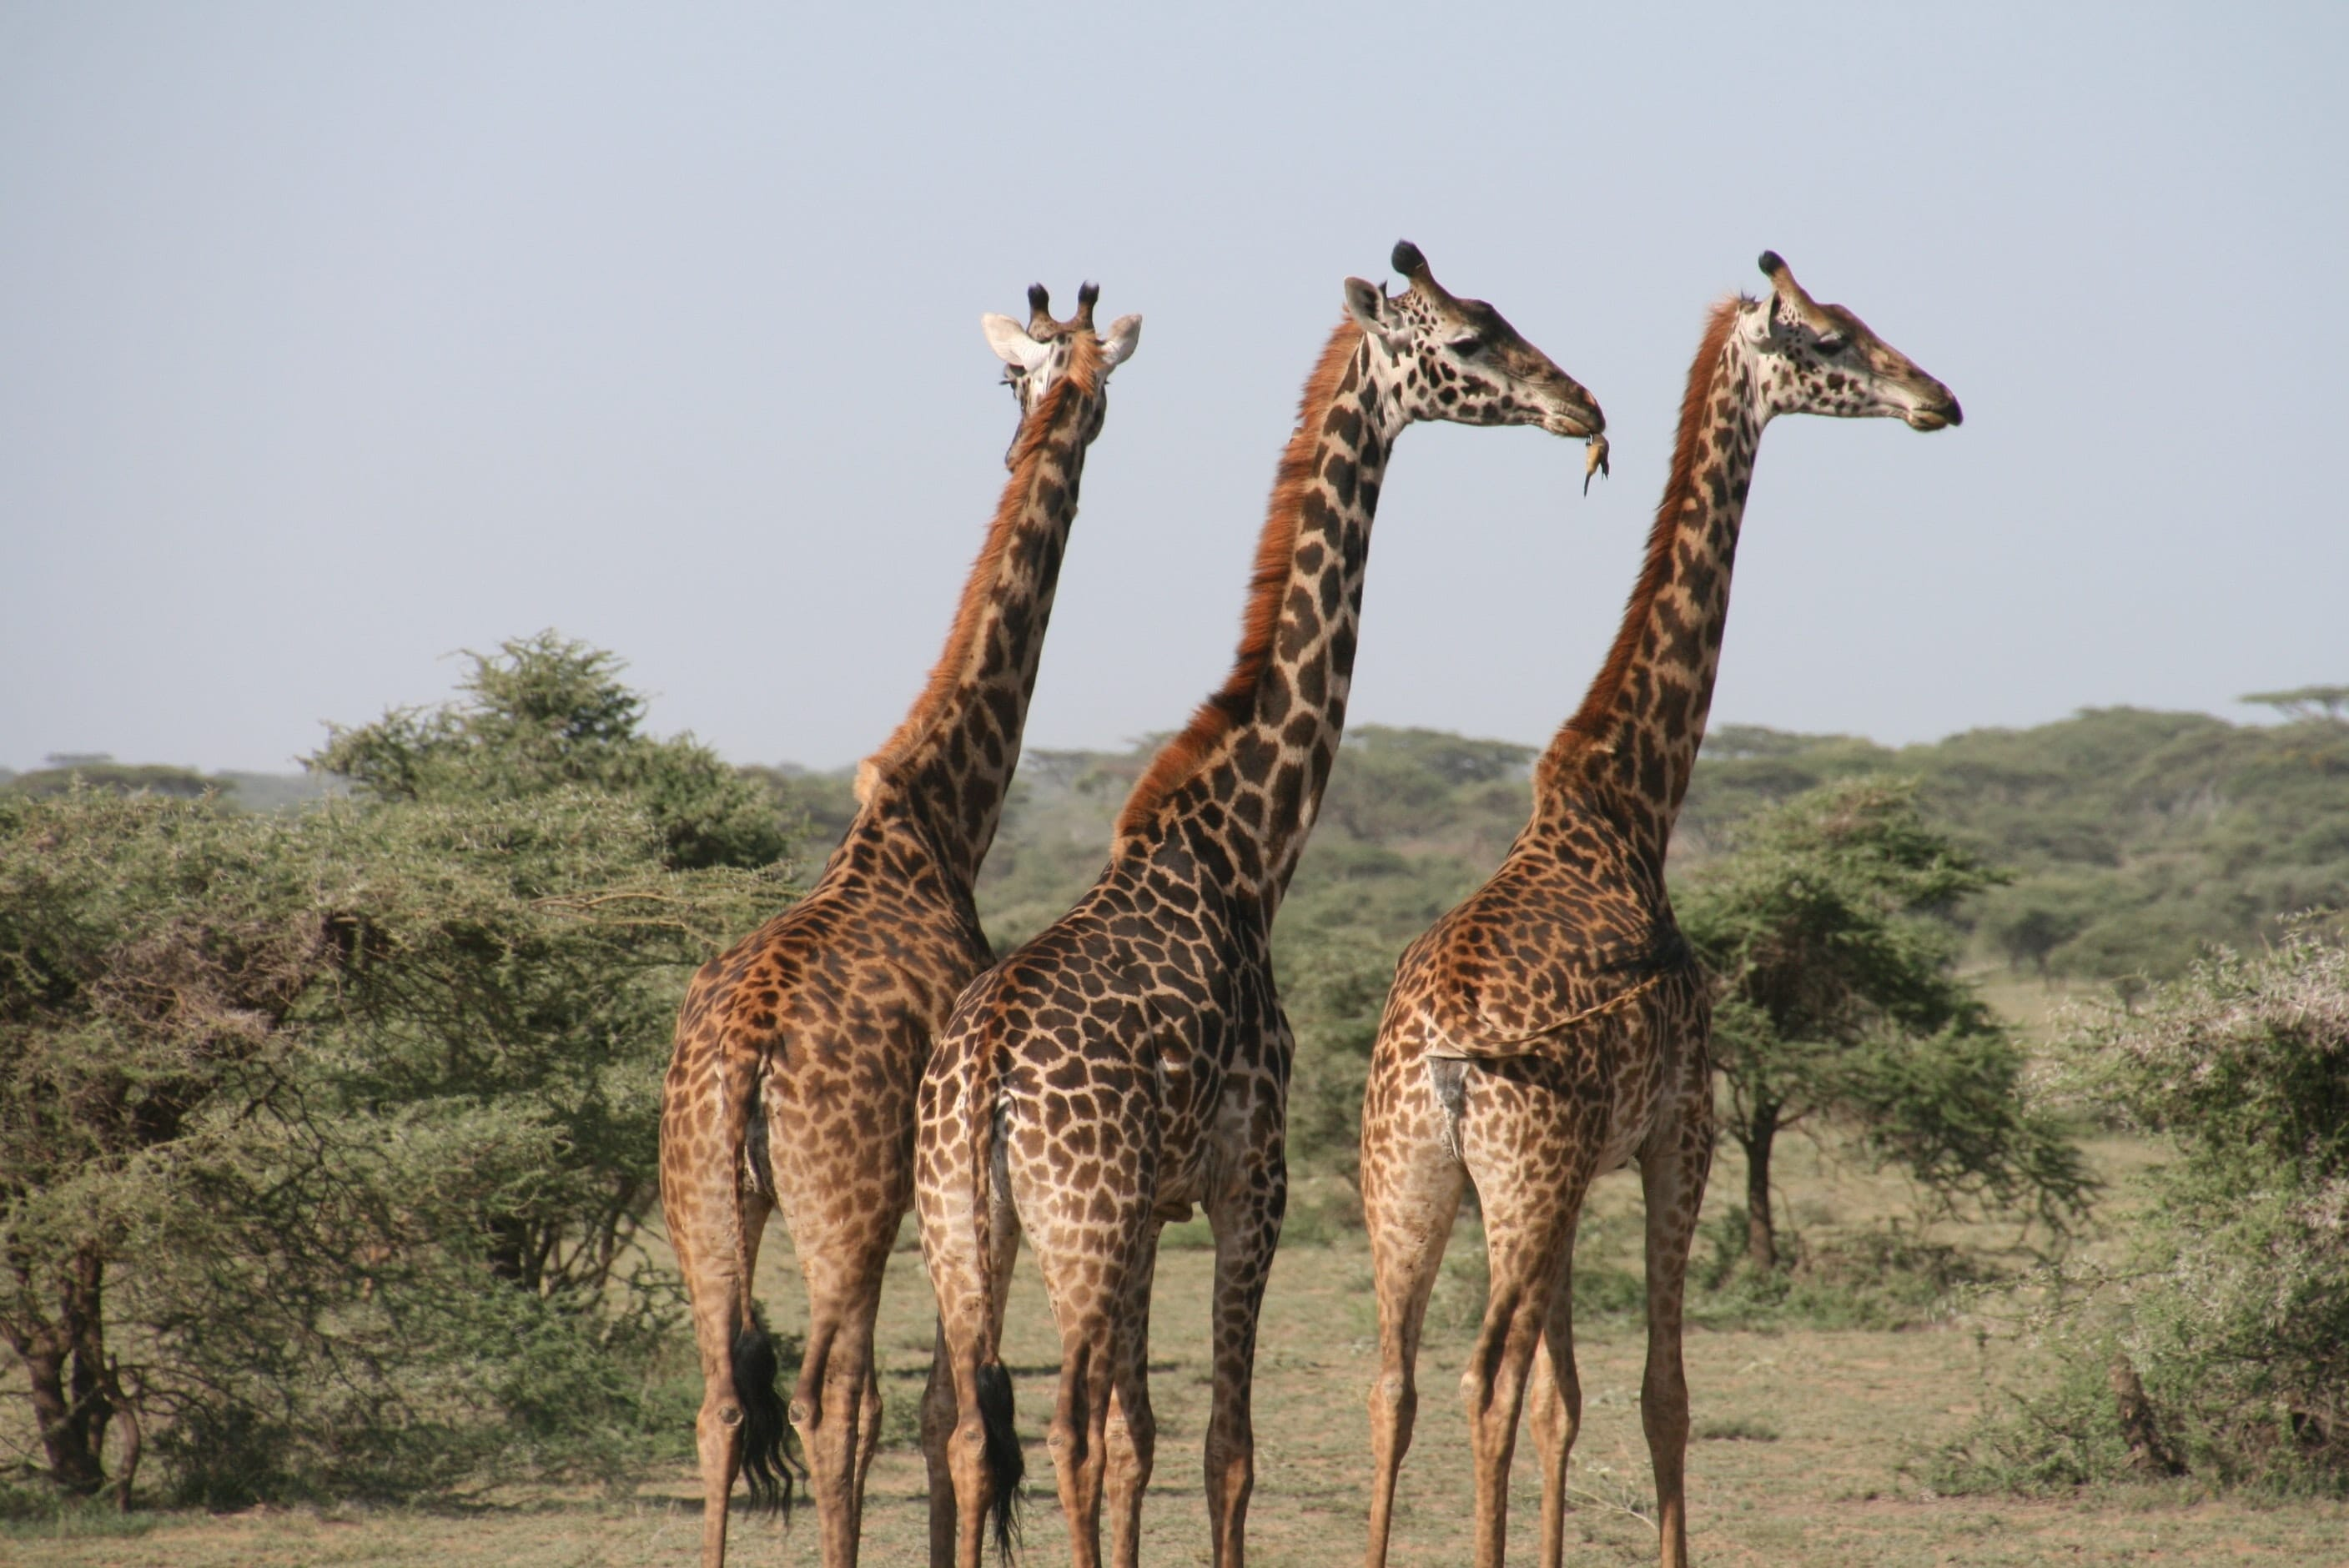 Three giraffes walking